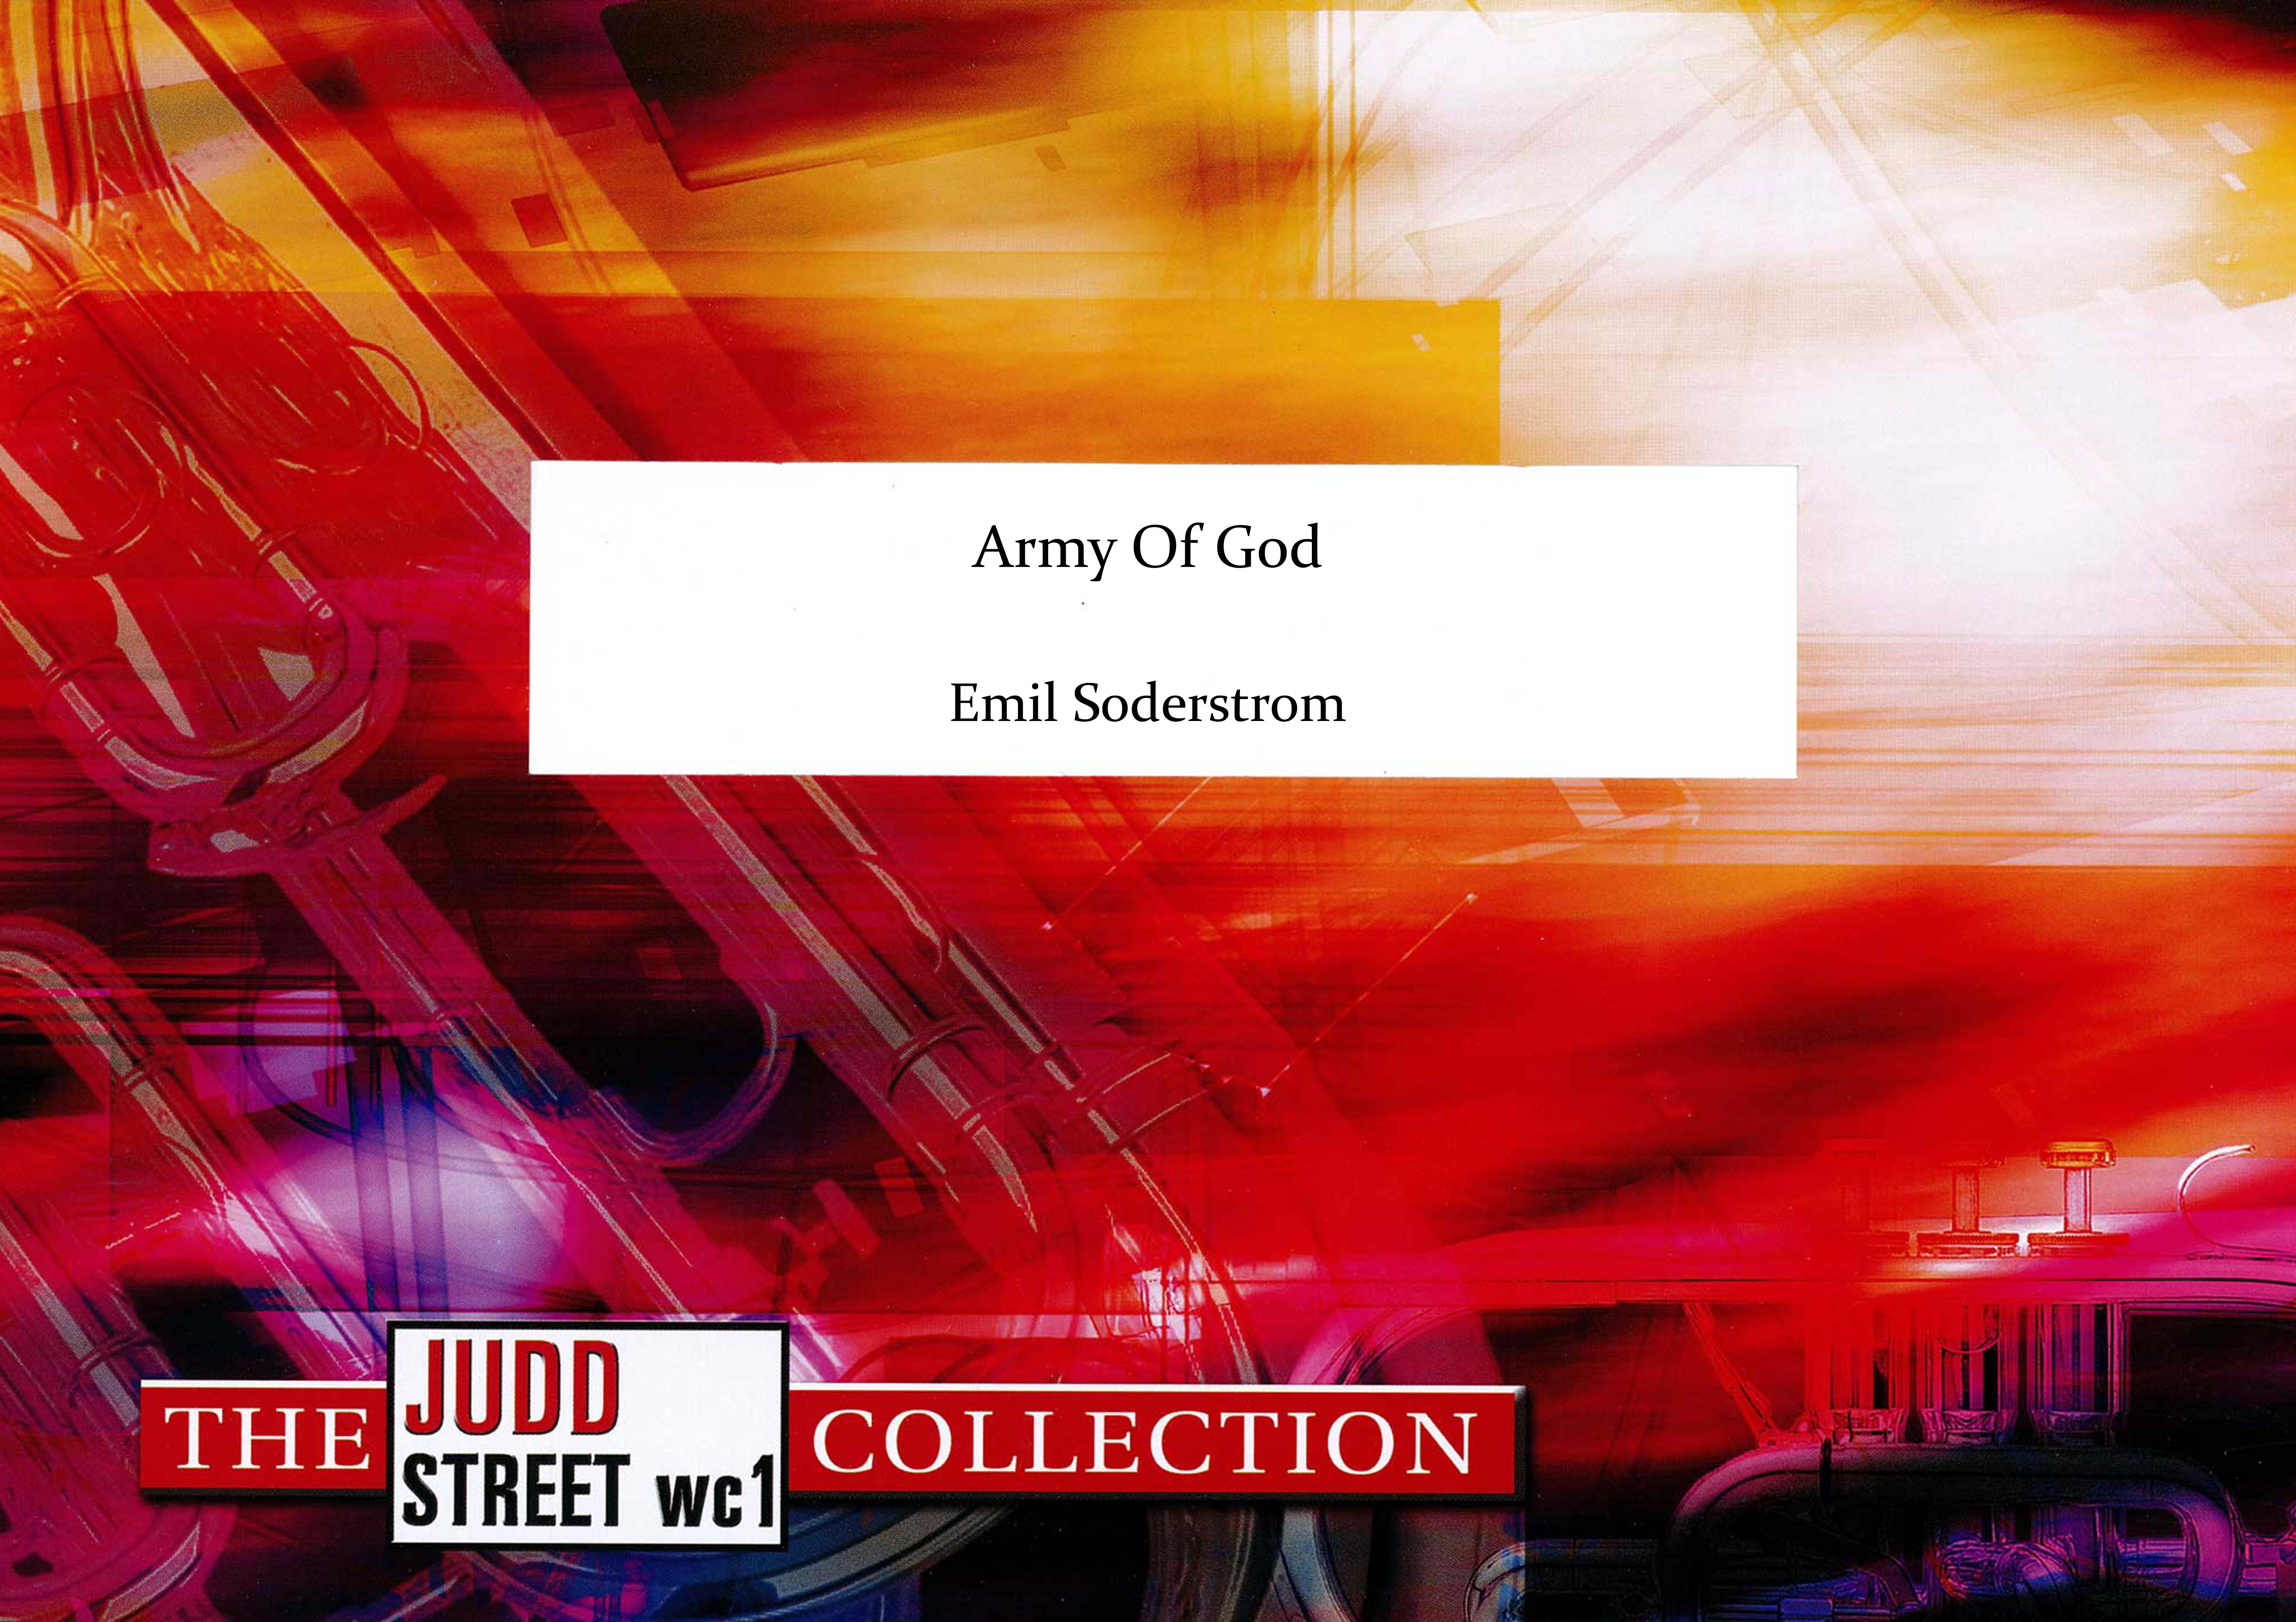 Army Of God (Brass Band - Score and Parts)